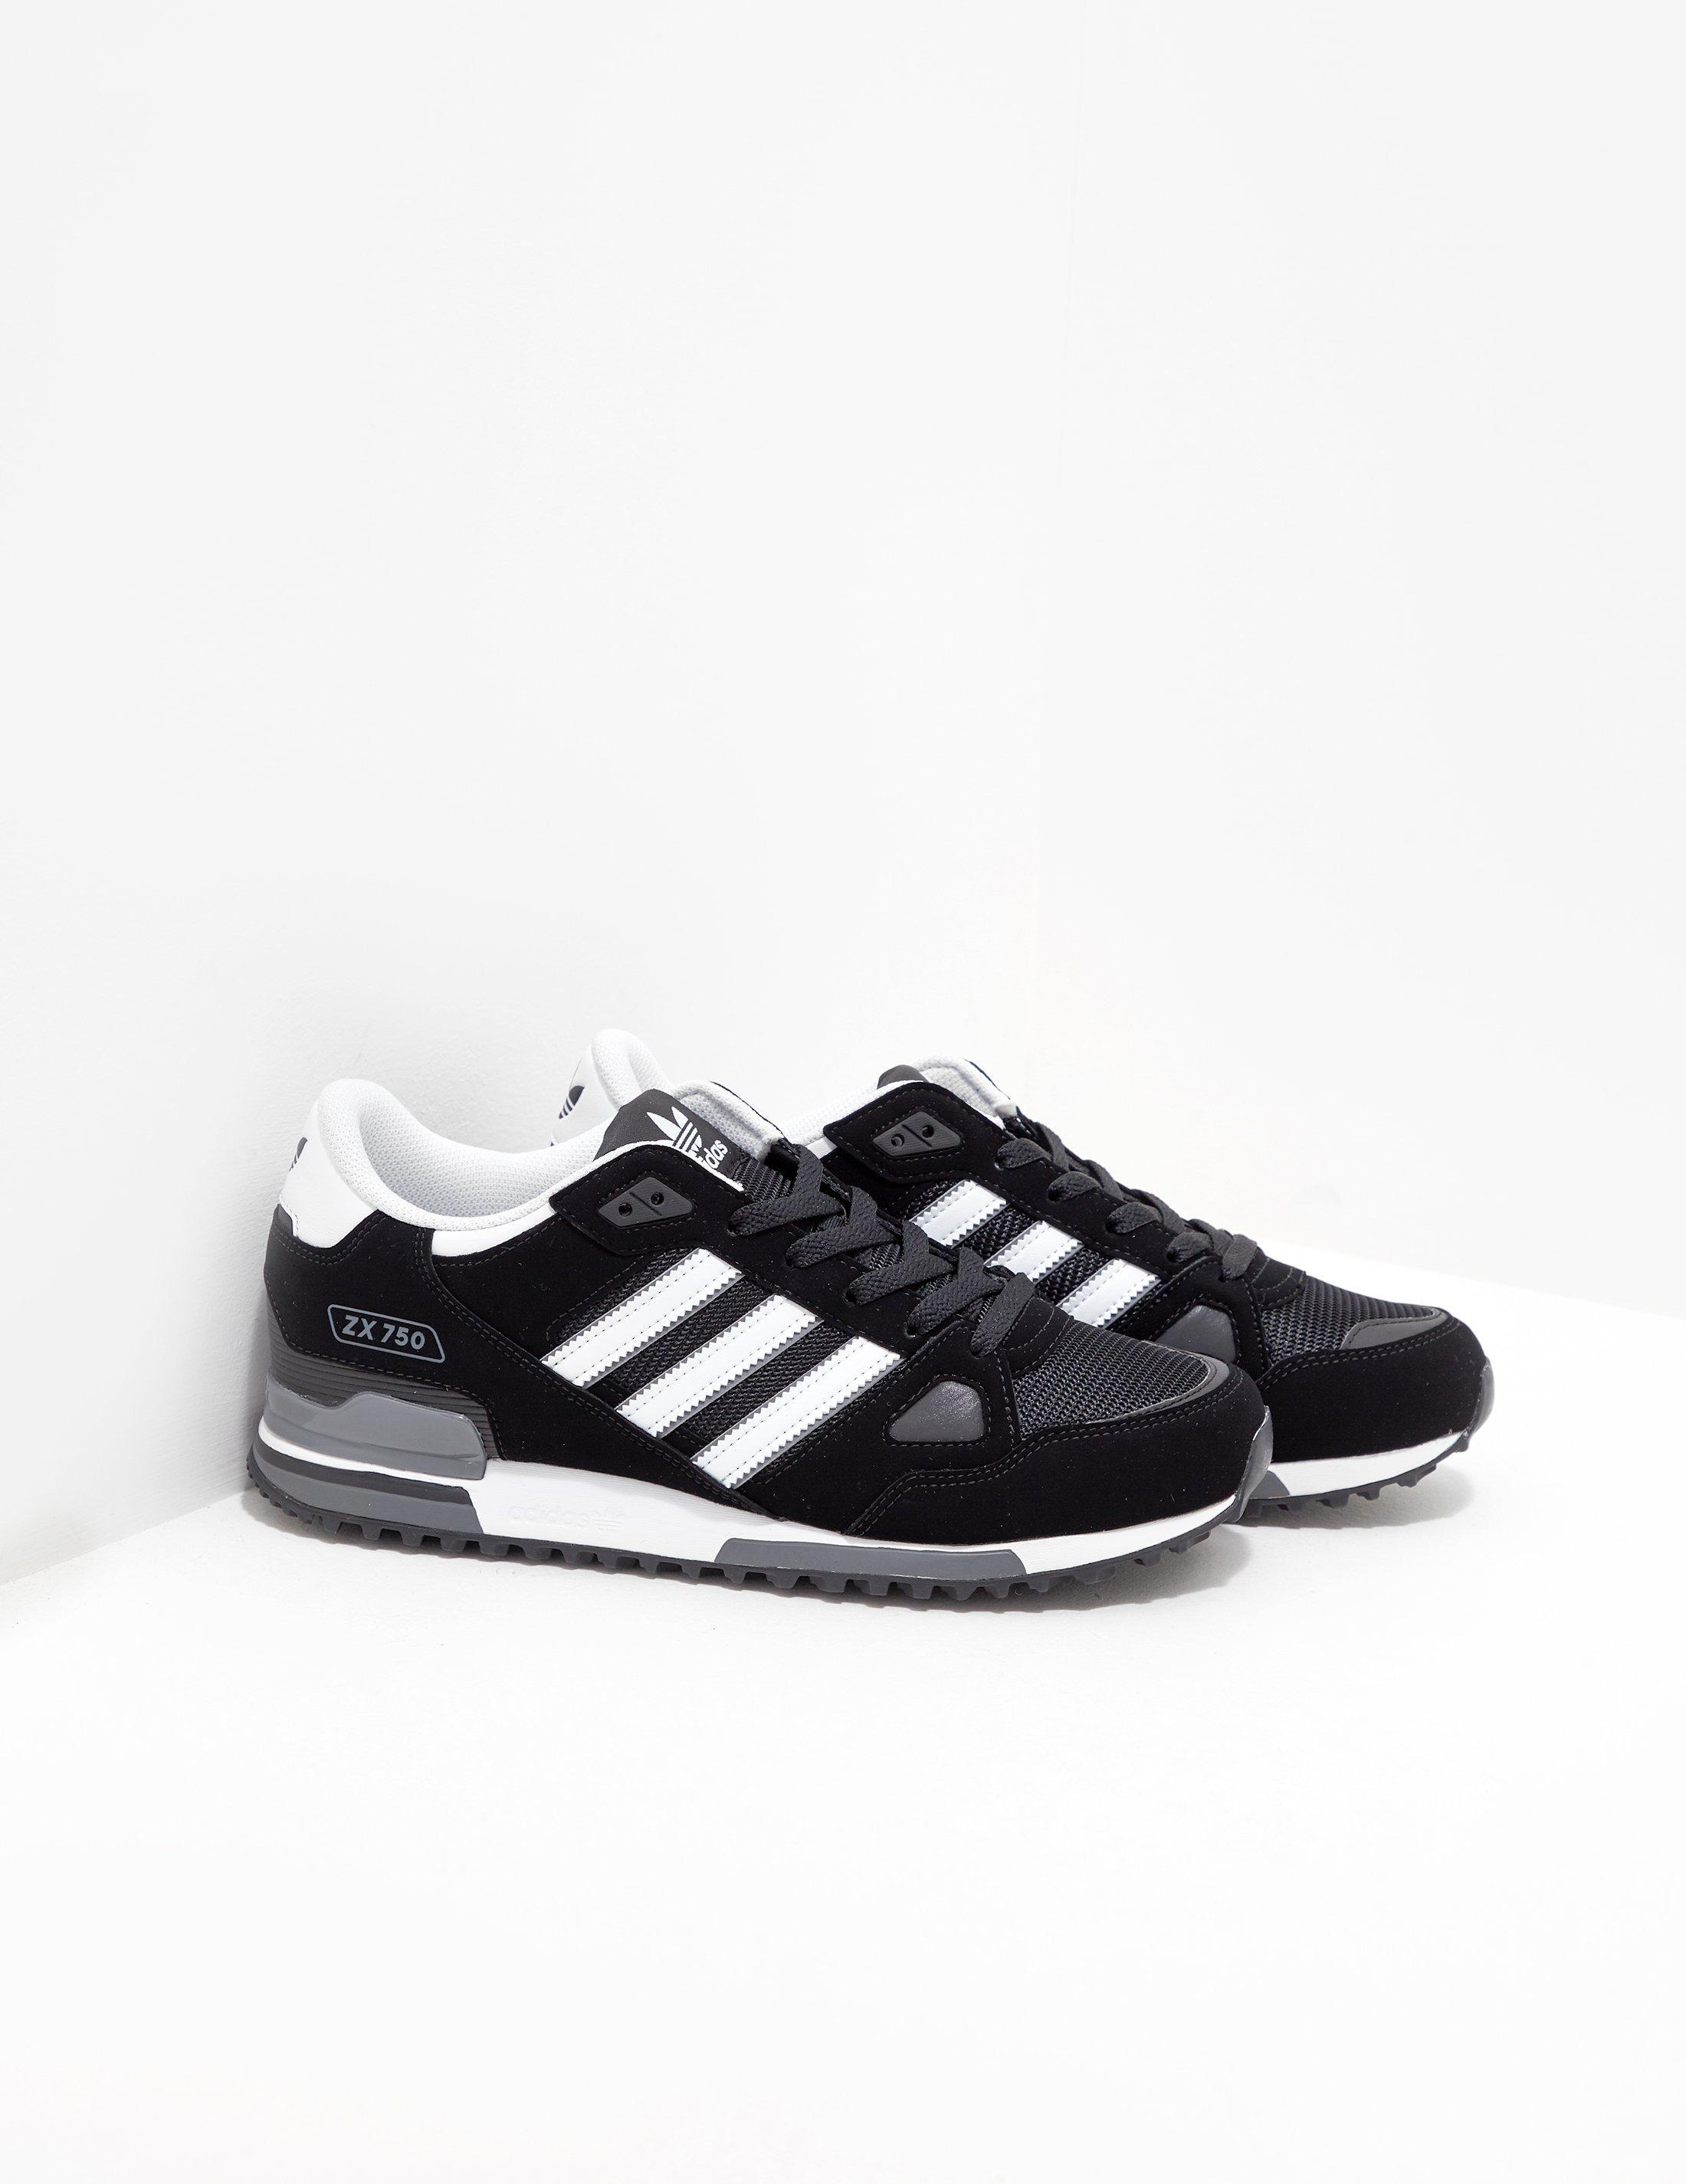 free shipping f38d0 dff60 Adidas Originals Mens Zx 750 - Exclusively To Tessuti Black in Black ...